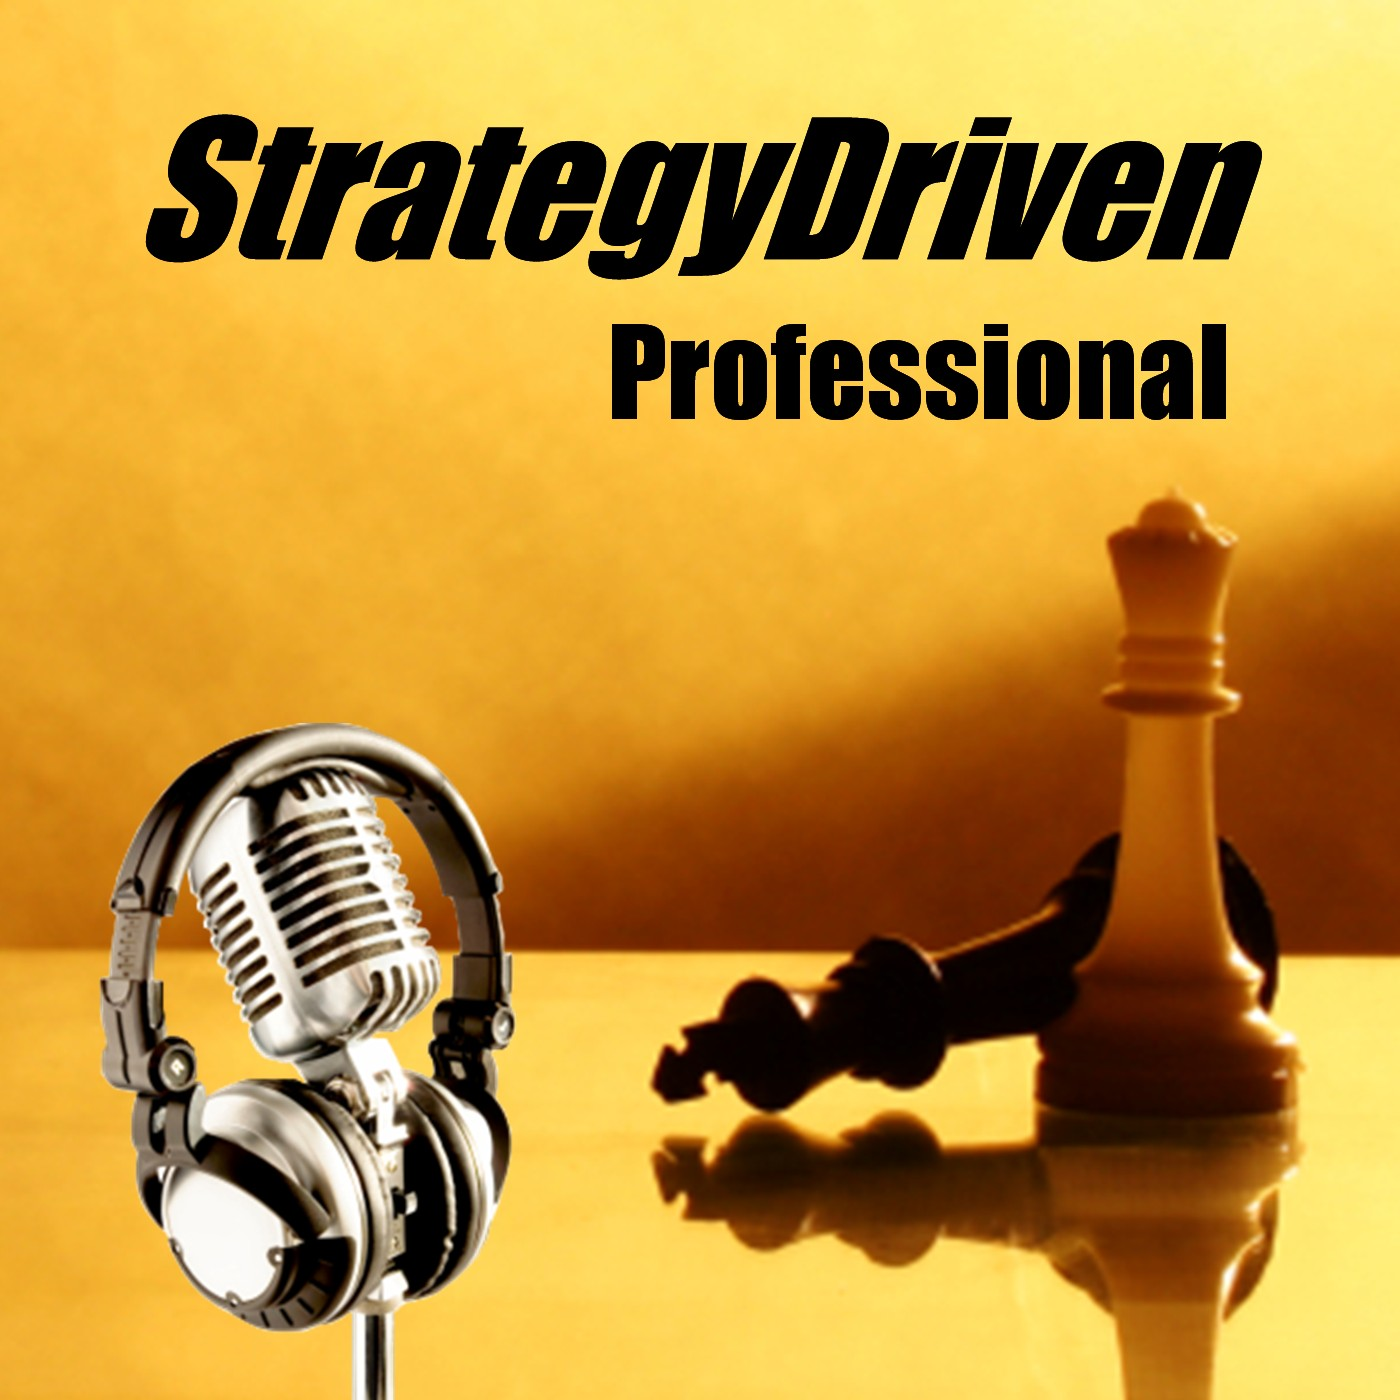 StrategyDriven Professional Podcast